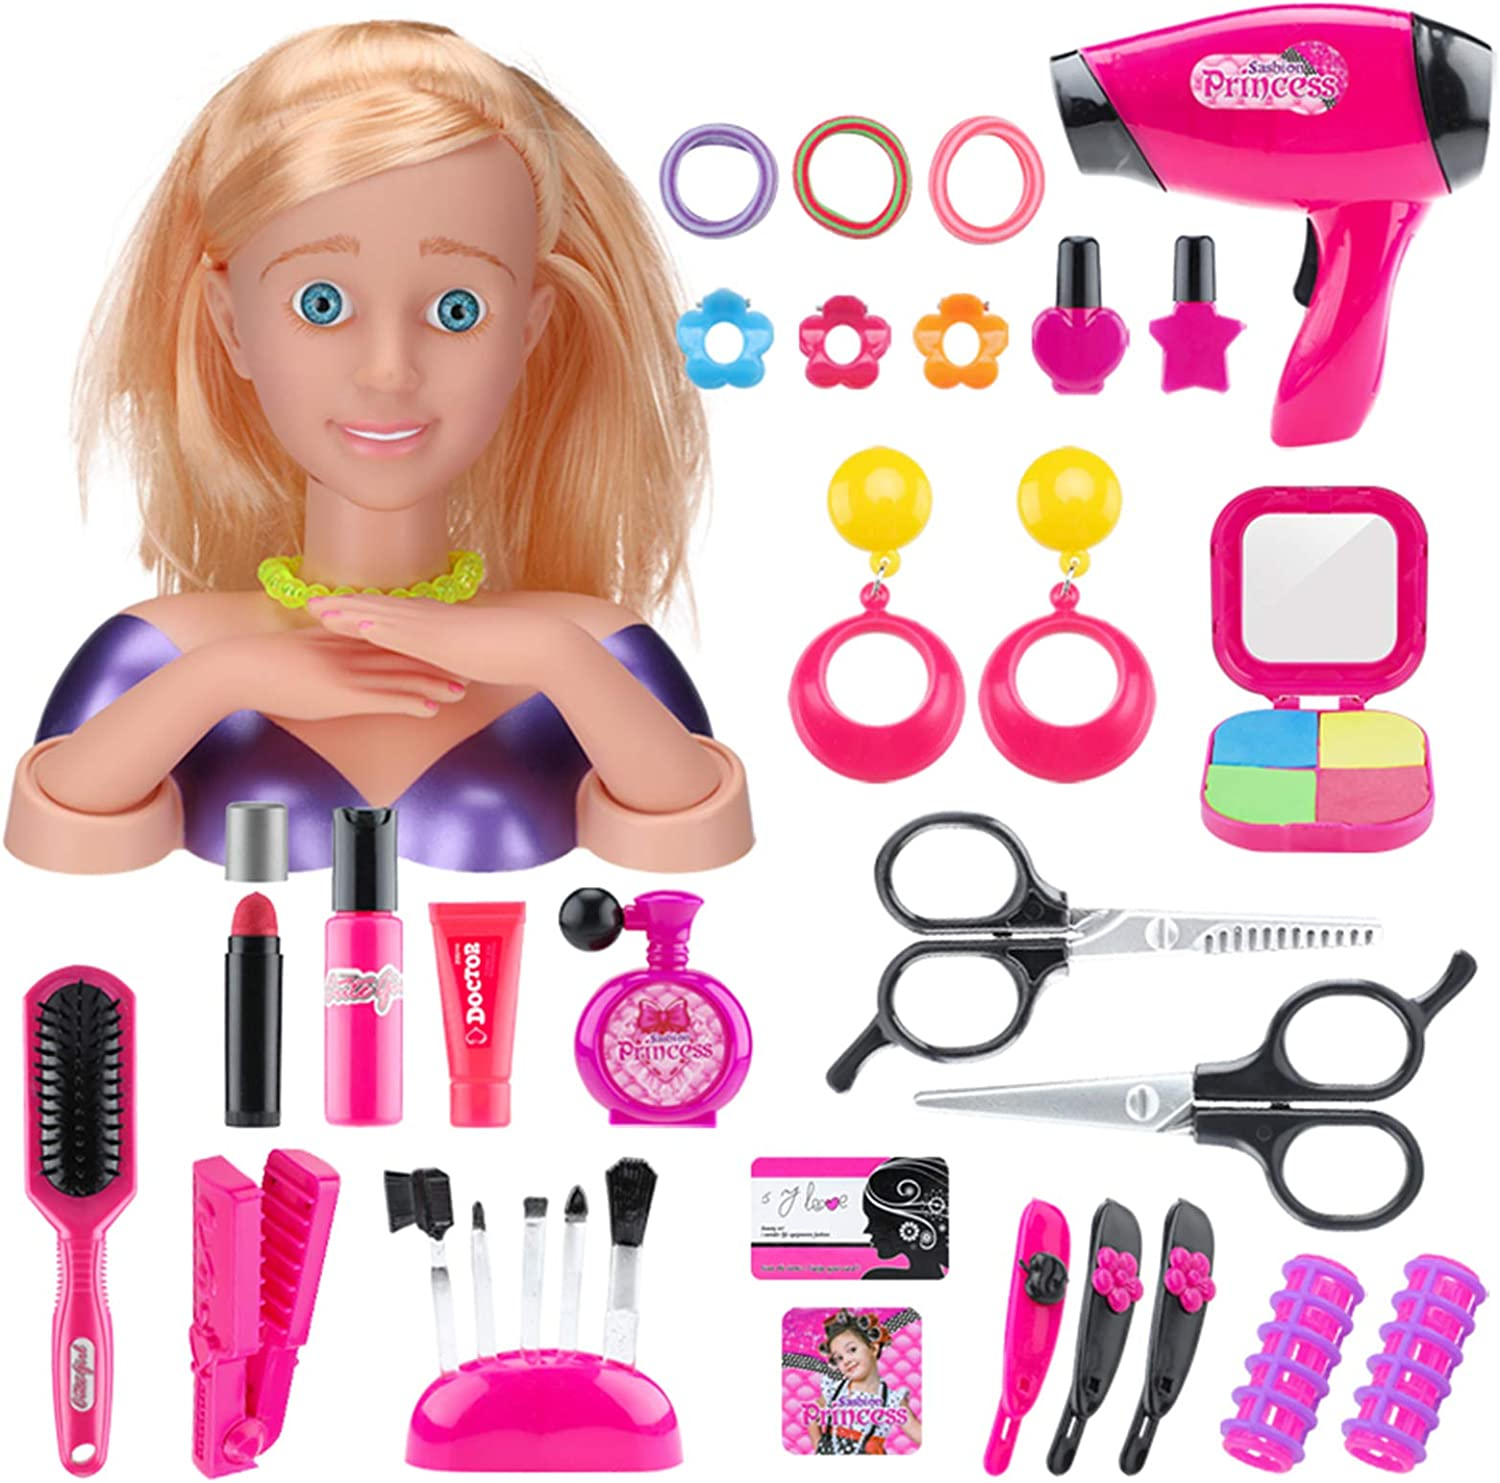 35PCS Makeup Kit with Hair Dryer Styling Head for Girls Doll Head Playset for Kids Play Game Halloween Christmas Birthday Party